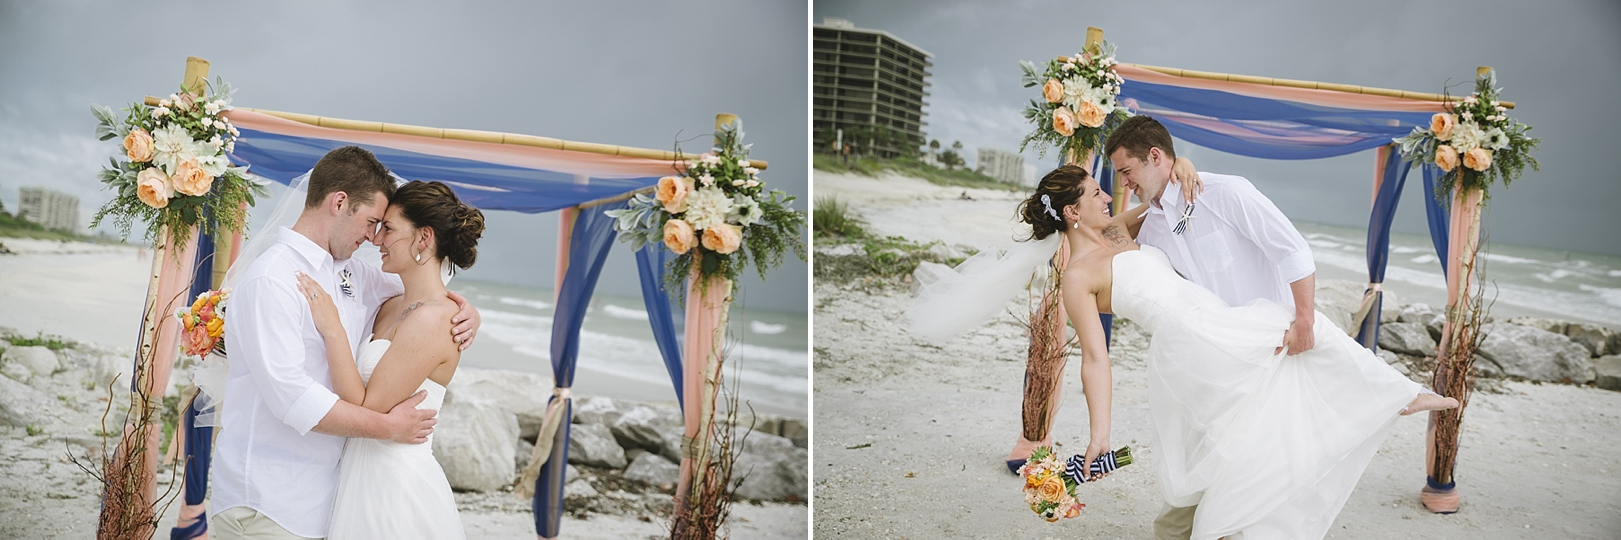 romantic nautical beach wedding